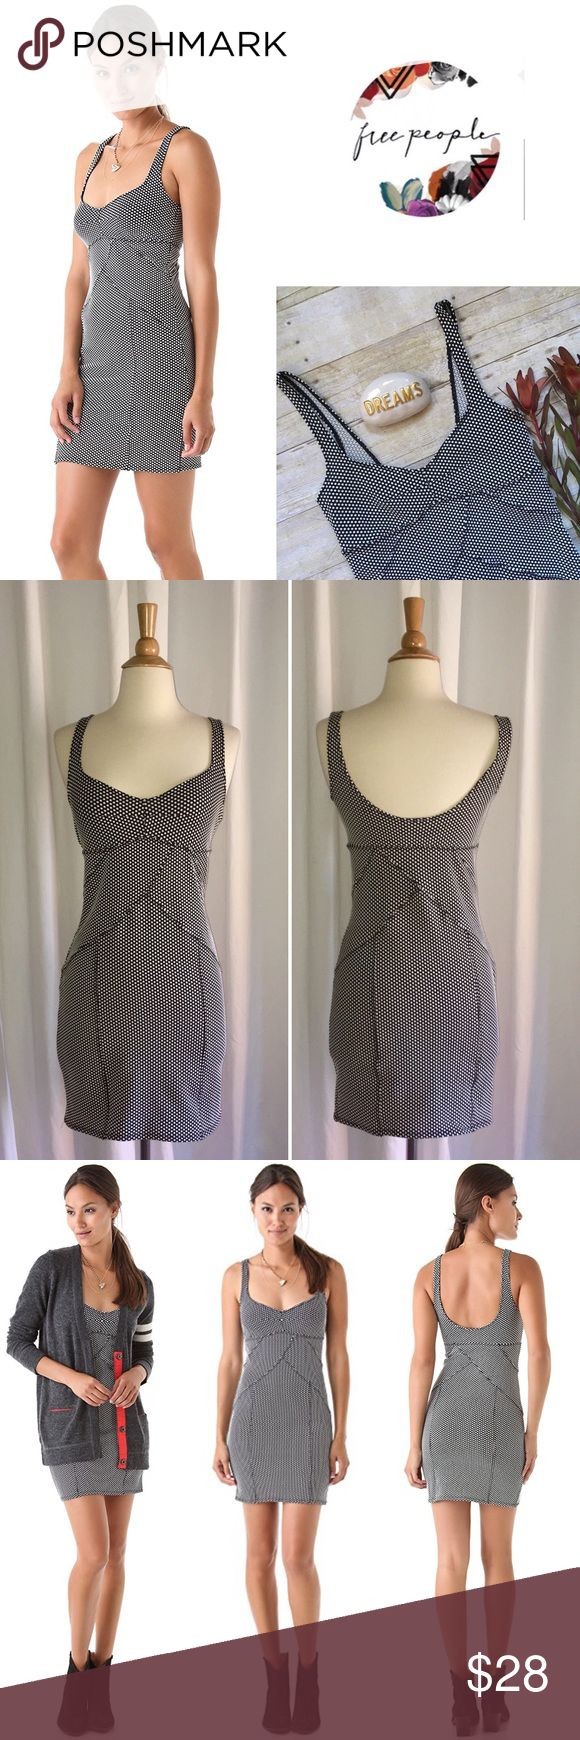 """Free People polka dot bodycon dress Polka dots crowd together on this curve-conforming Jersey tank dress. Scalloped seams meet along the bodice and contour the skirt for the ultimate bodycon fit. In like new condition. 92/8 poly, spandex. 33""""L. Size medium. Free People Dresses"""